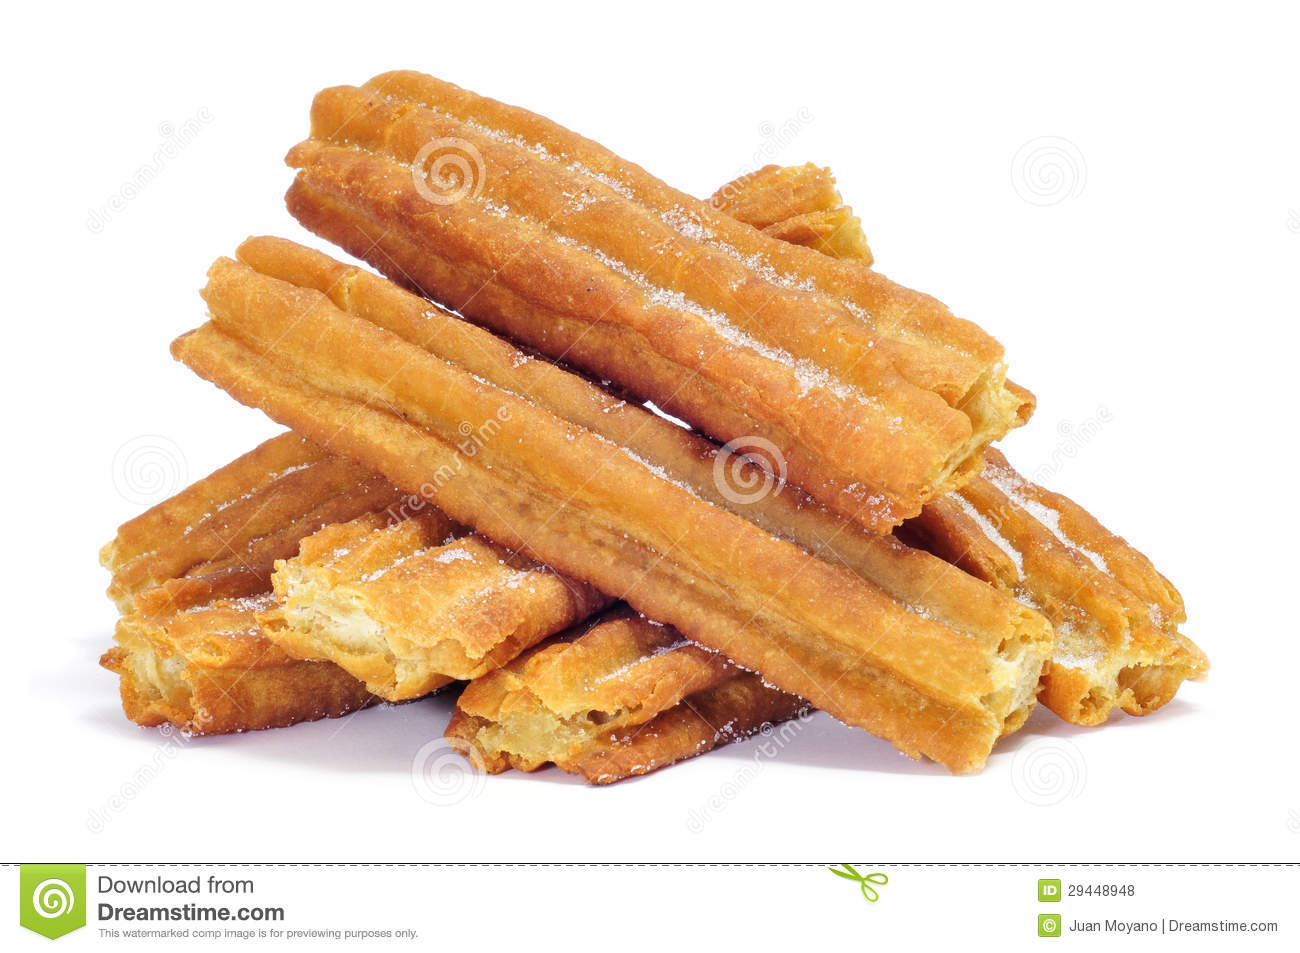 ... churros ingrédients churros churros c est un mot simple churro